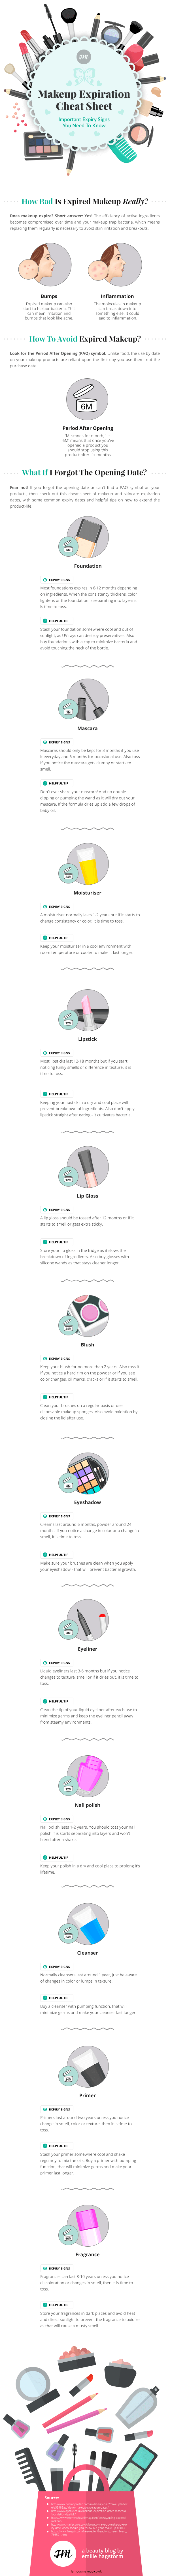 Makeup Expiration Cheat Sheet: Important Expiry Signs You Need To Know (Infographic)